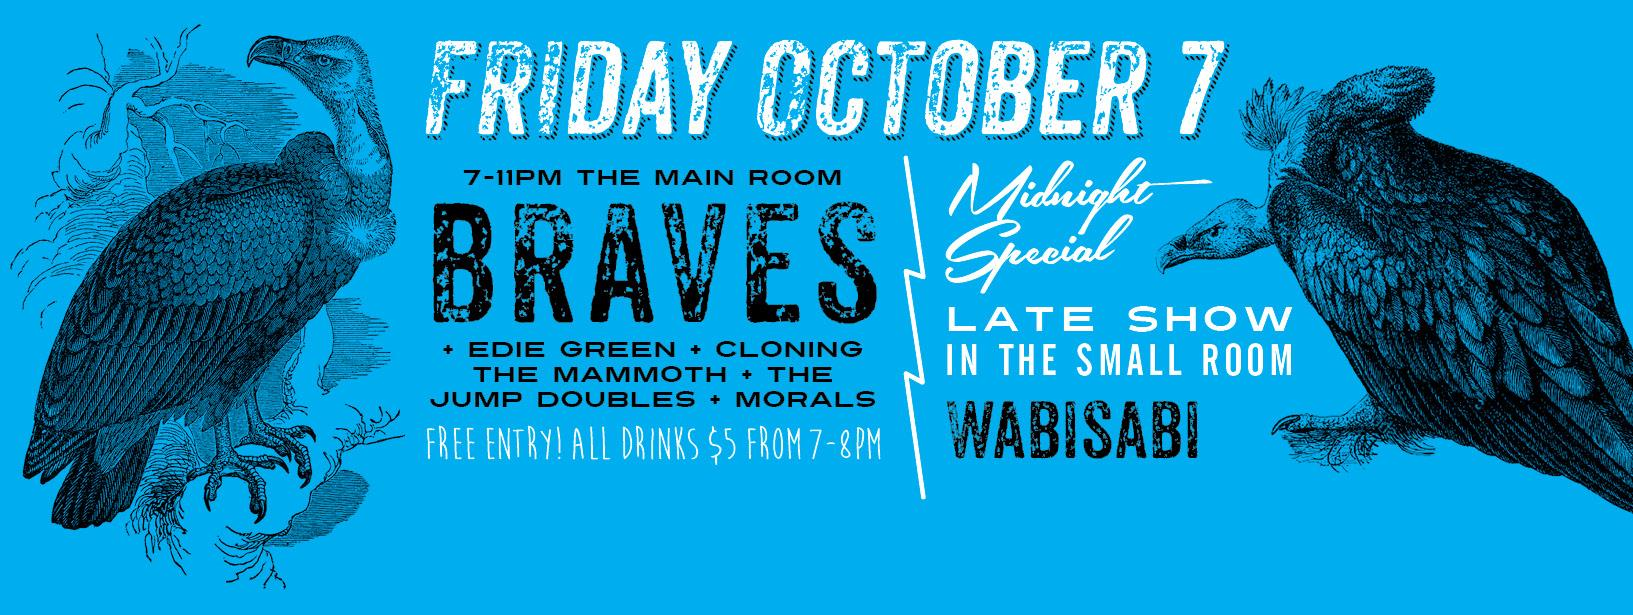 FREE show – Braves + Edie Green + Cloning the Mammoth + The Jump Doubles + Morals